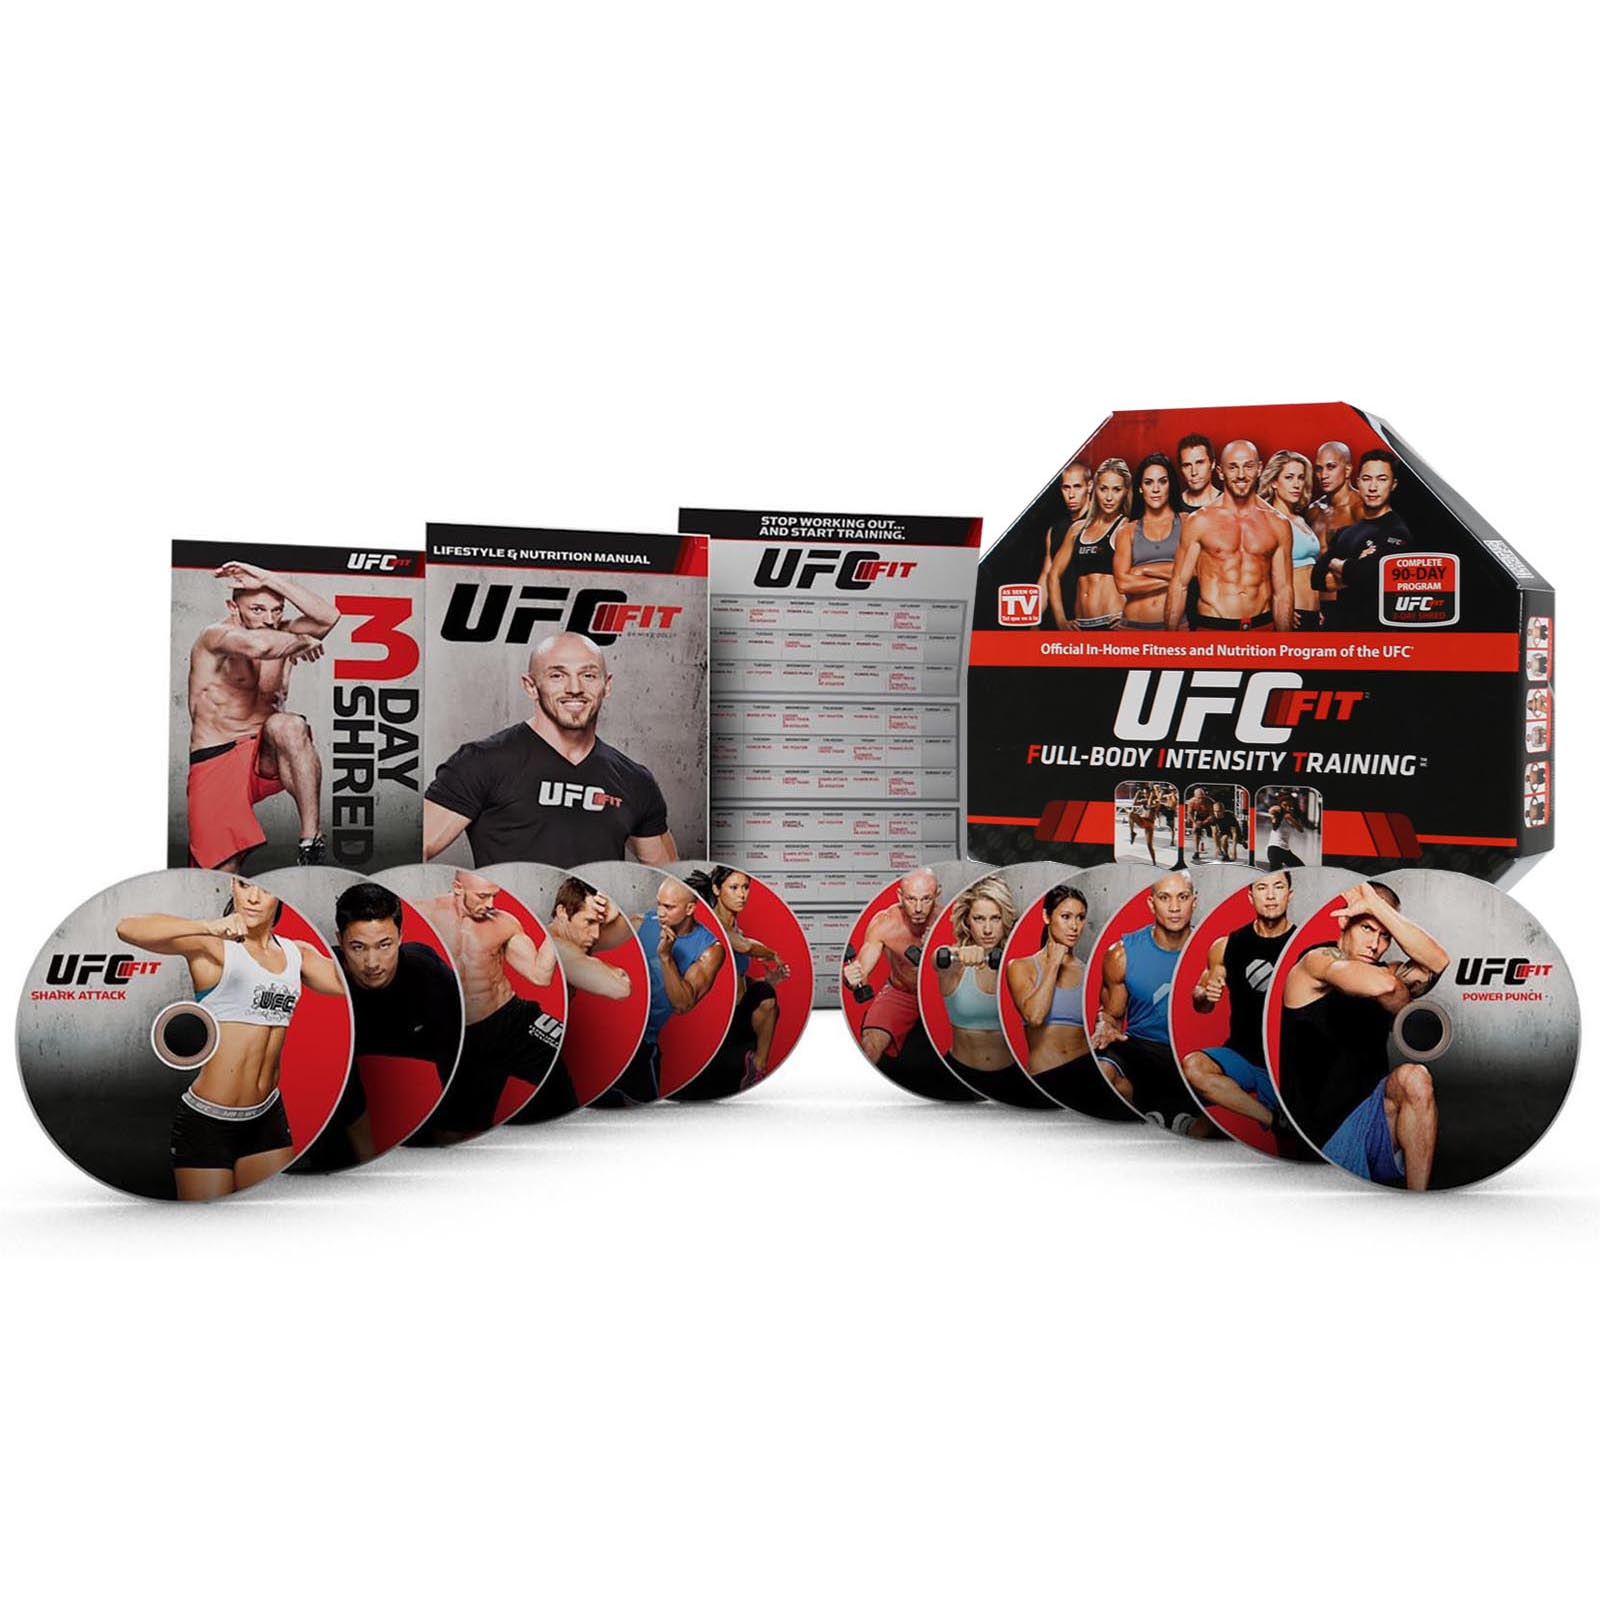 UFC Fit Complete 12-Week Home Training Fitness Exercise Workout Program DVD Set by UFC FIT